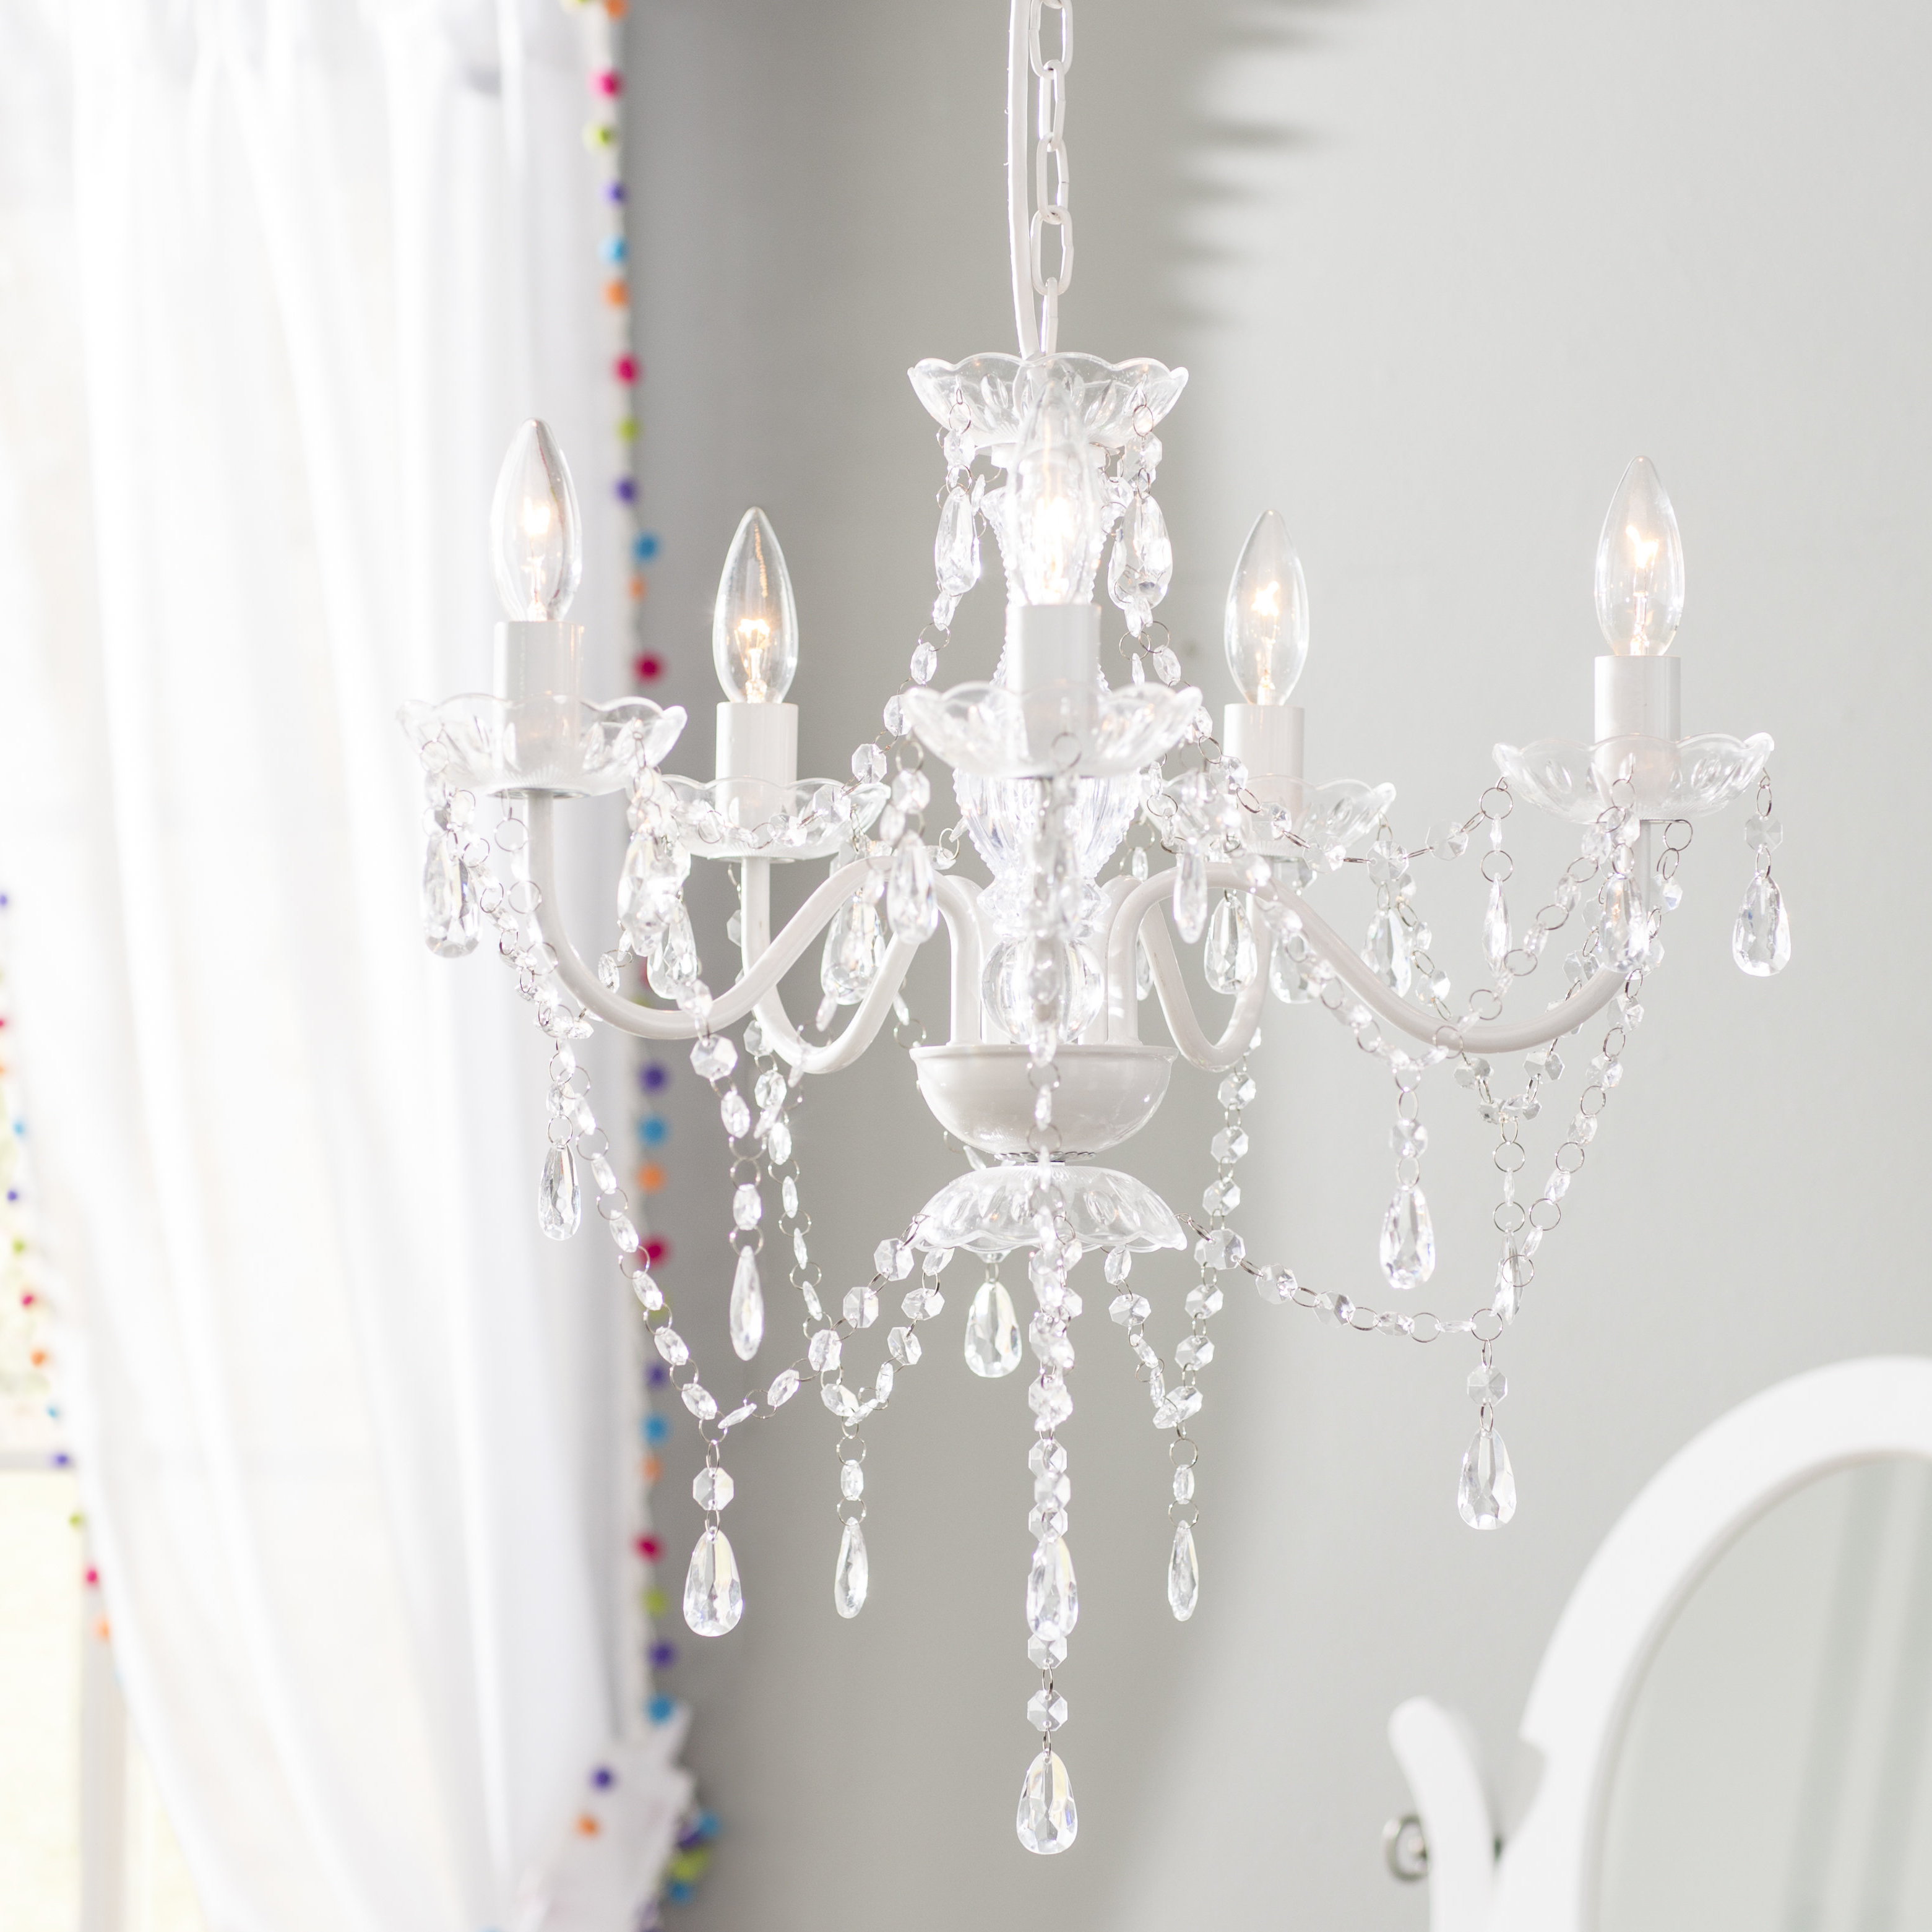 Hesse 5 Light Candle Style Chandeliers With Regard To Famous 5 Light Candle Chandelier (View 24 of 25)